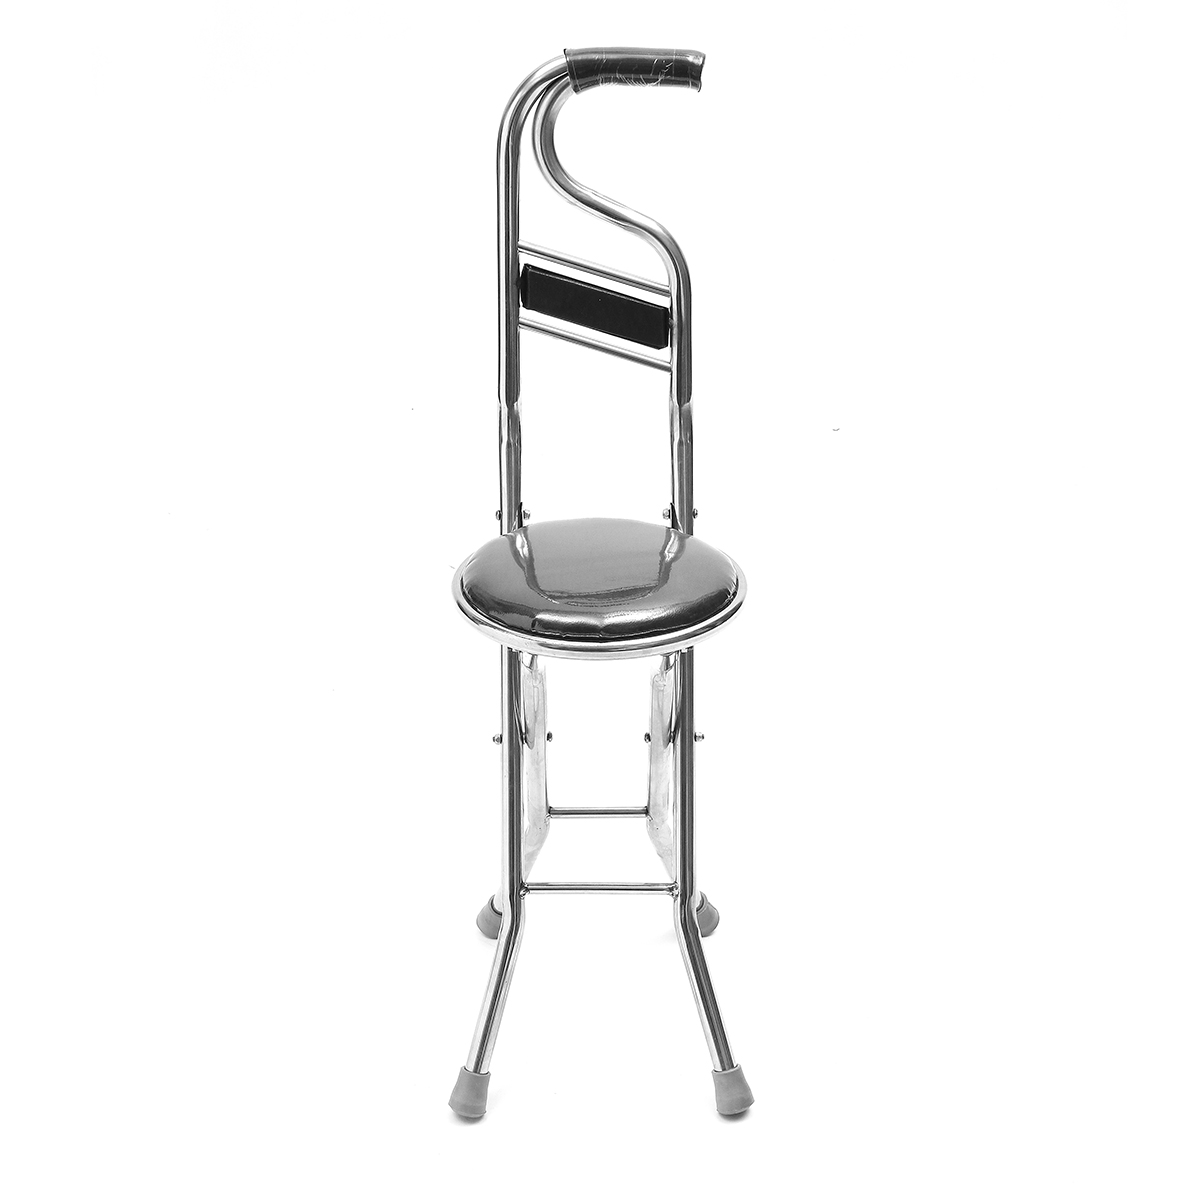 Walking Chair Stainless Steel Portable Folding Walking Stick Chair Seat